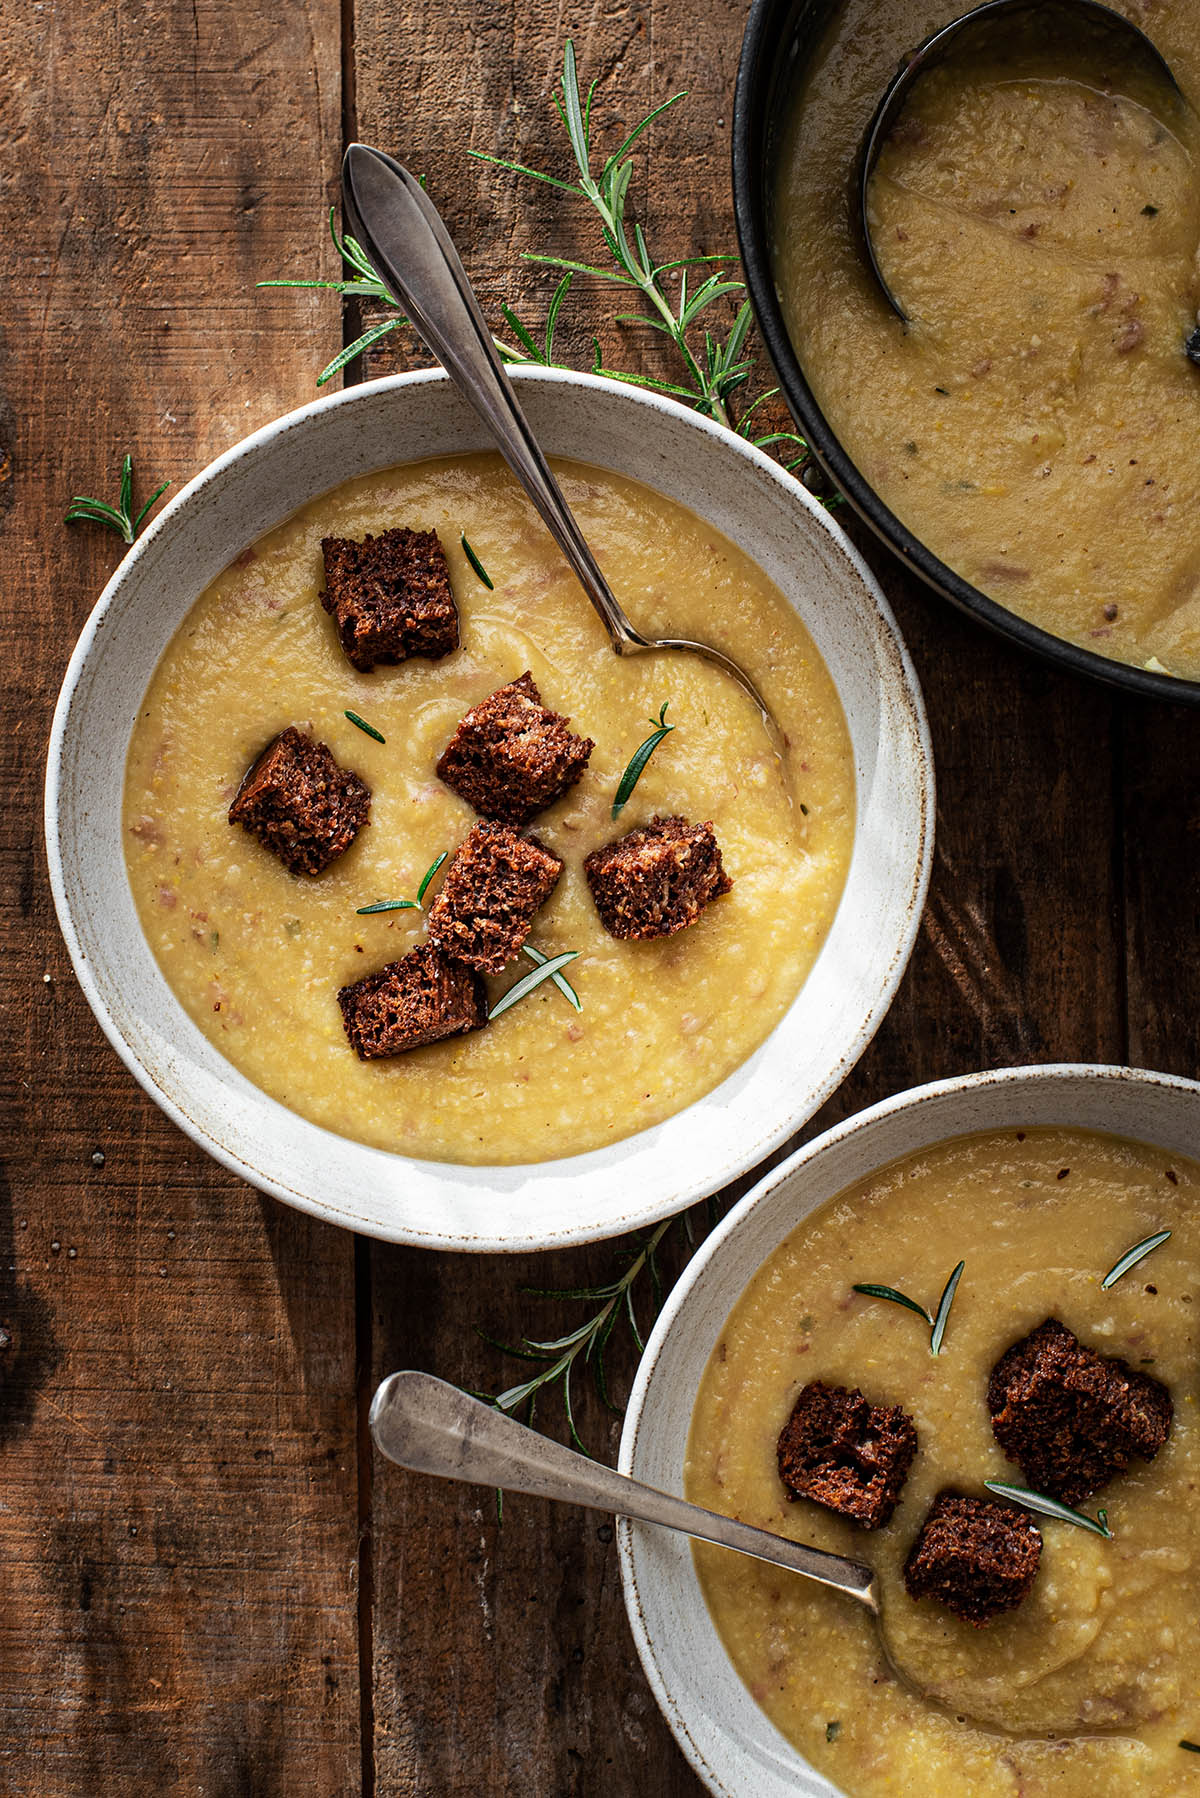 Bowls of cauliflower potato soup topped with rye croutons.